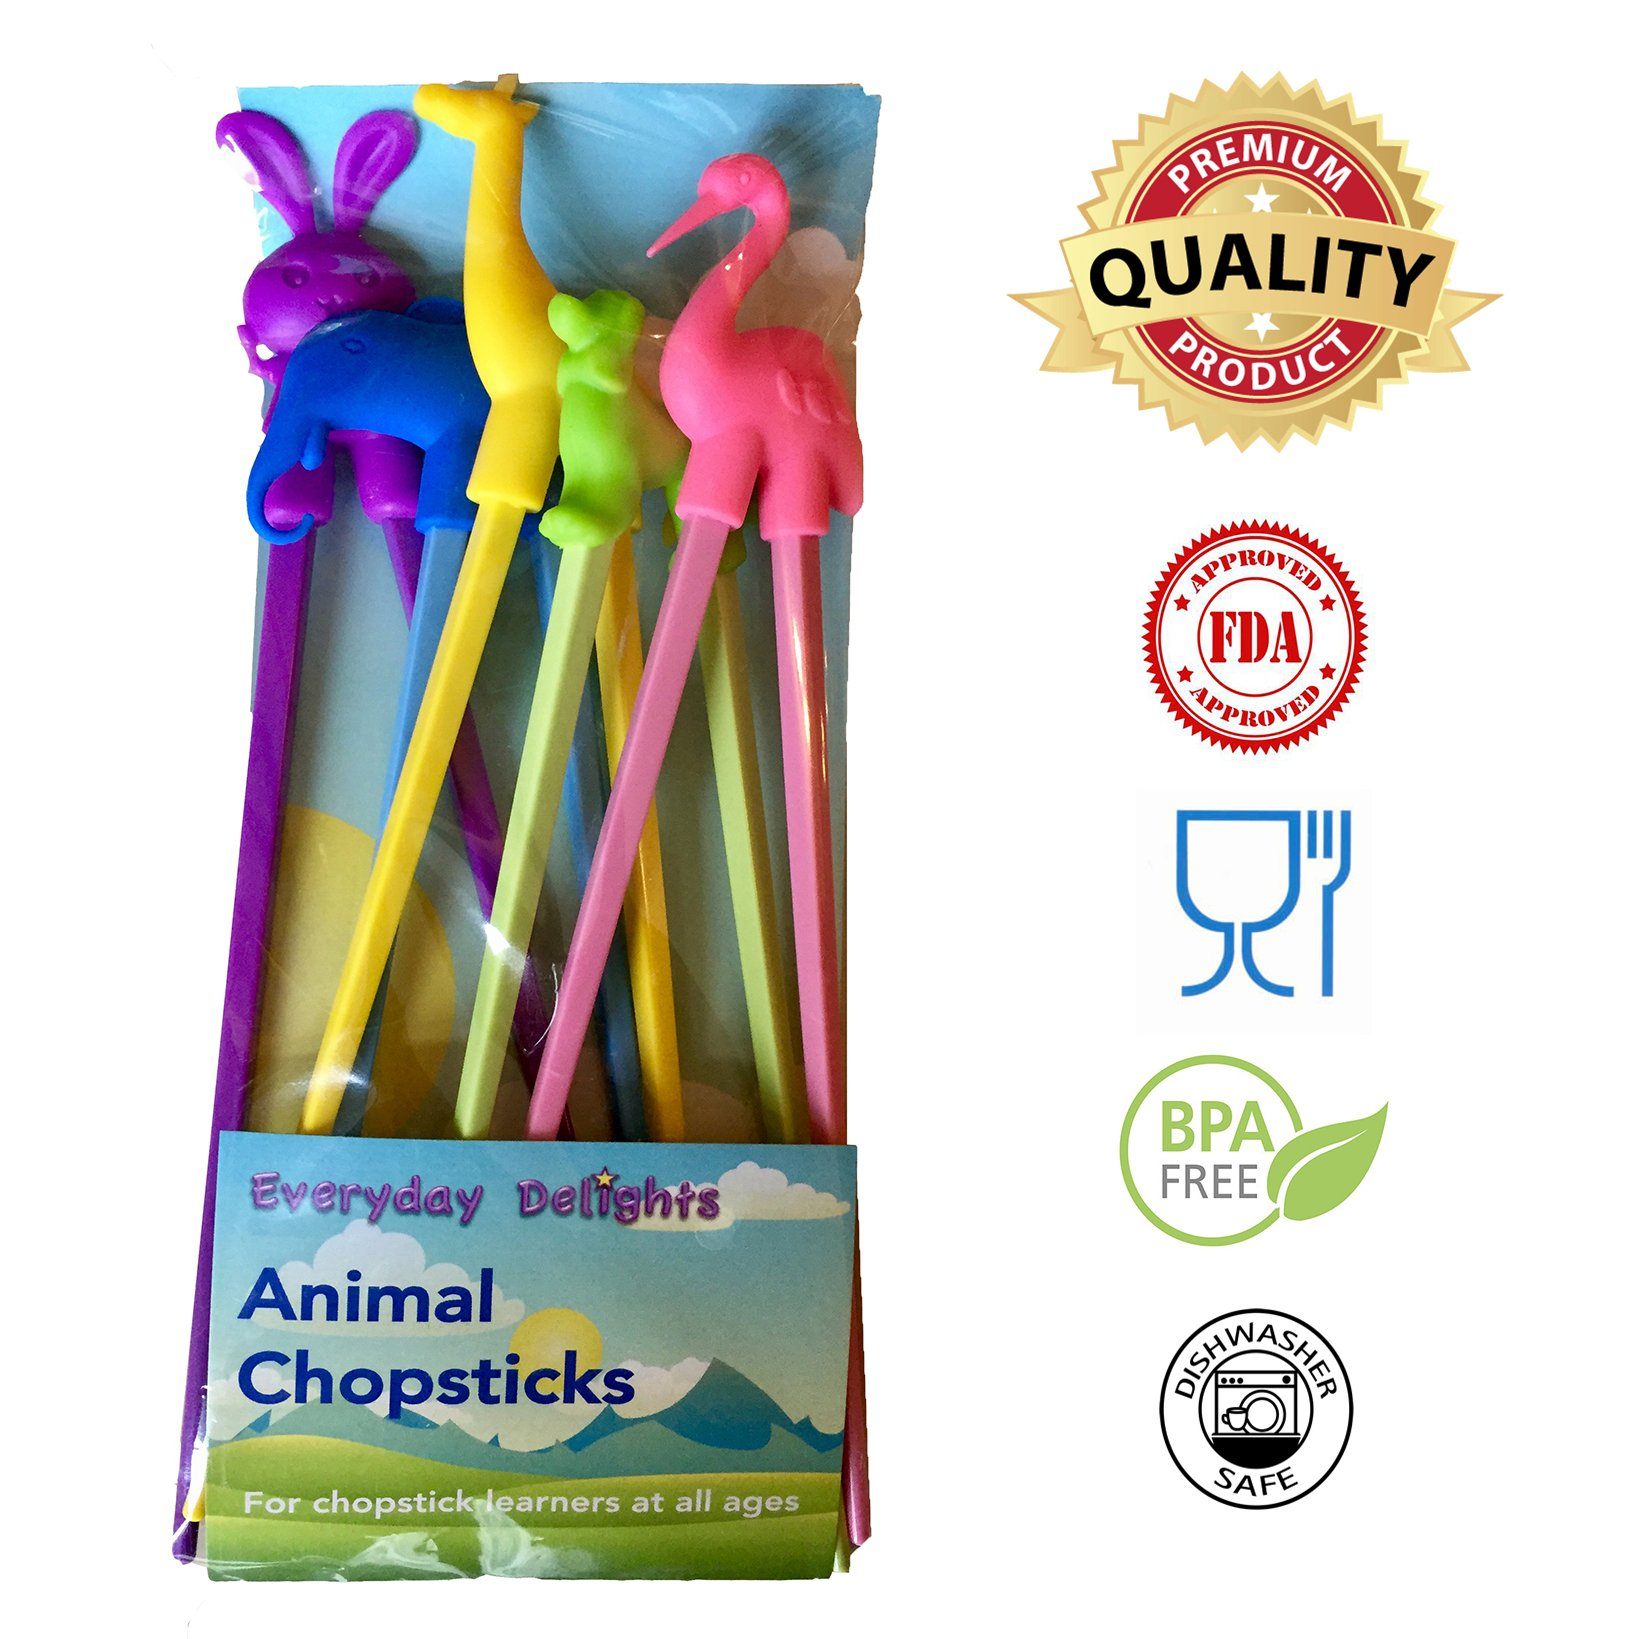 Everyday Delights Animal Training Chopstick Utensil Set / Chop Sticks (Rabbit, Flamingo, Giraffe, Dog & Elephant) for Children, Kids, Teens, Adults, 5 pairs - Cute, Eco-friendly, Reusable, Durable